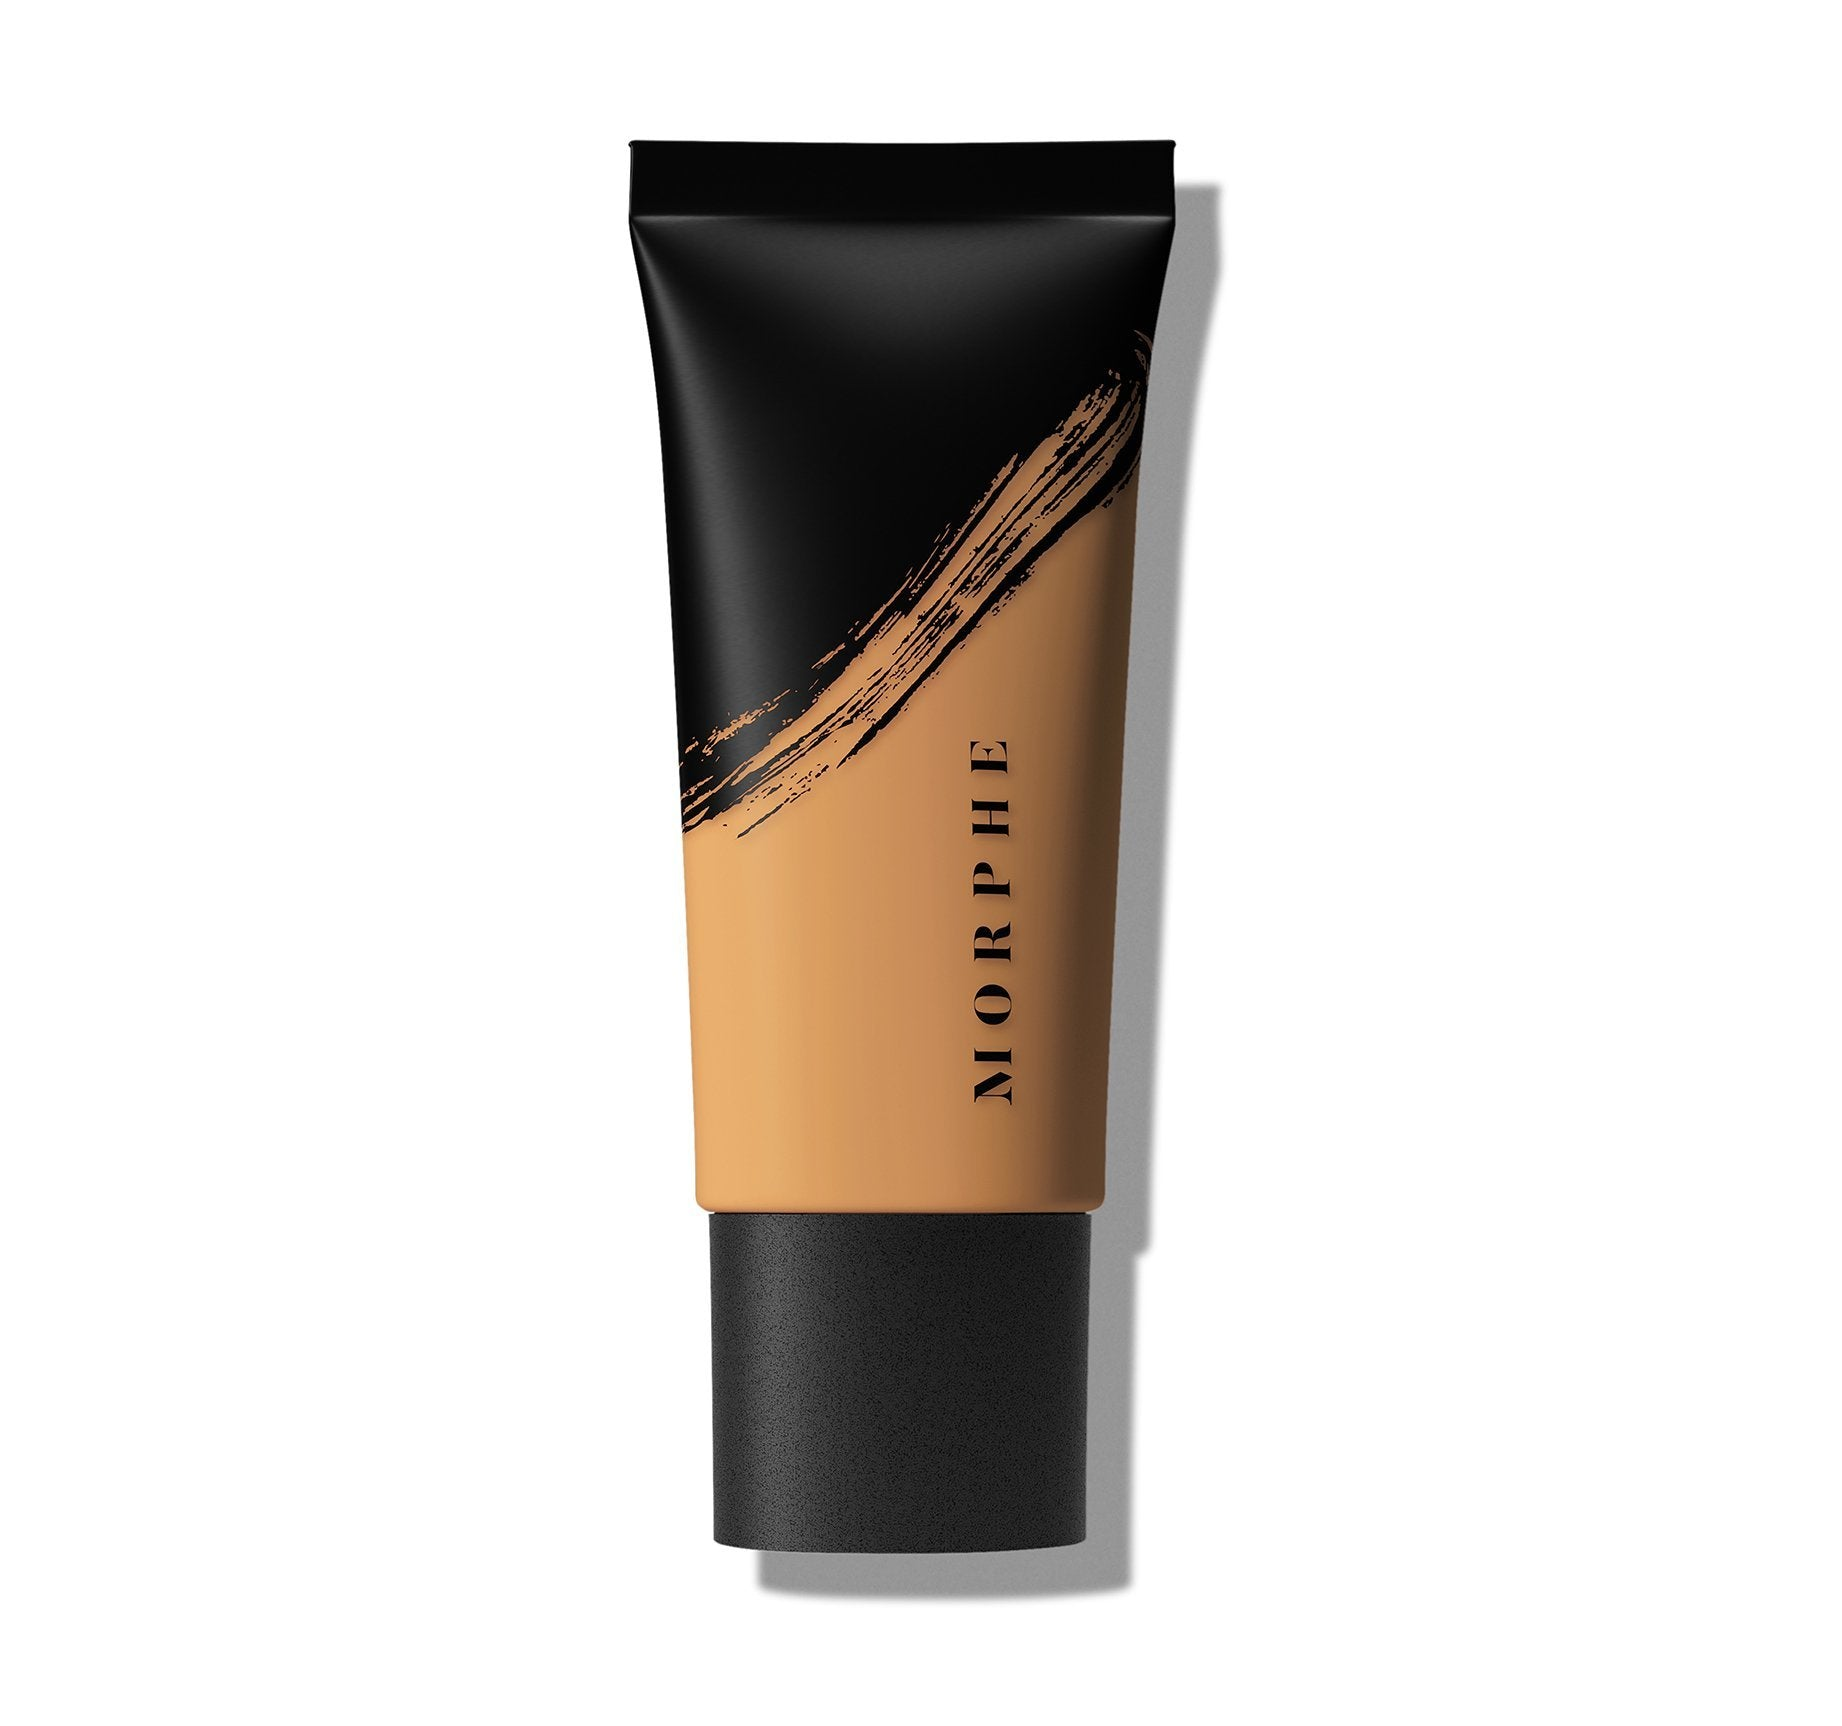 FLUIDITY FULL-COVERAGE FOUNDATION - F2.30, view larger image